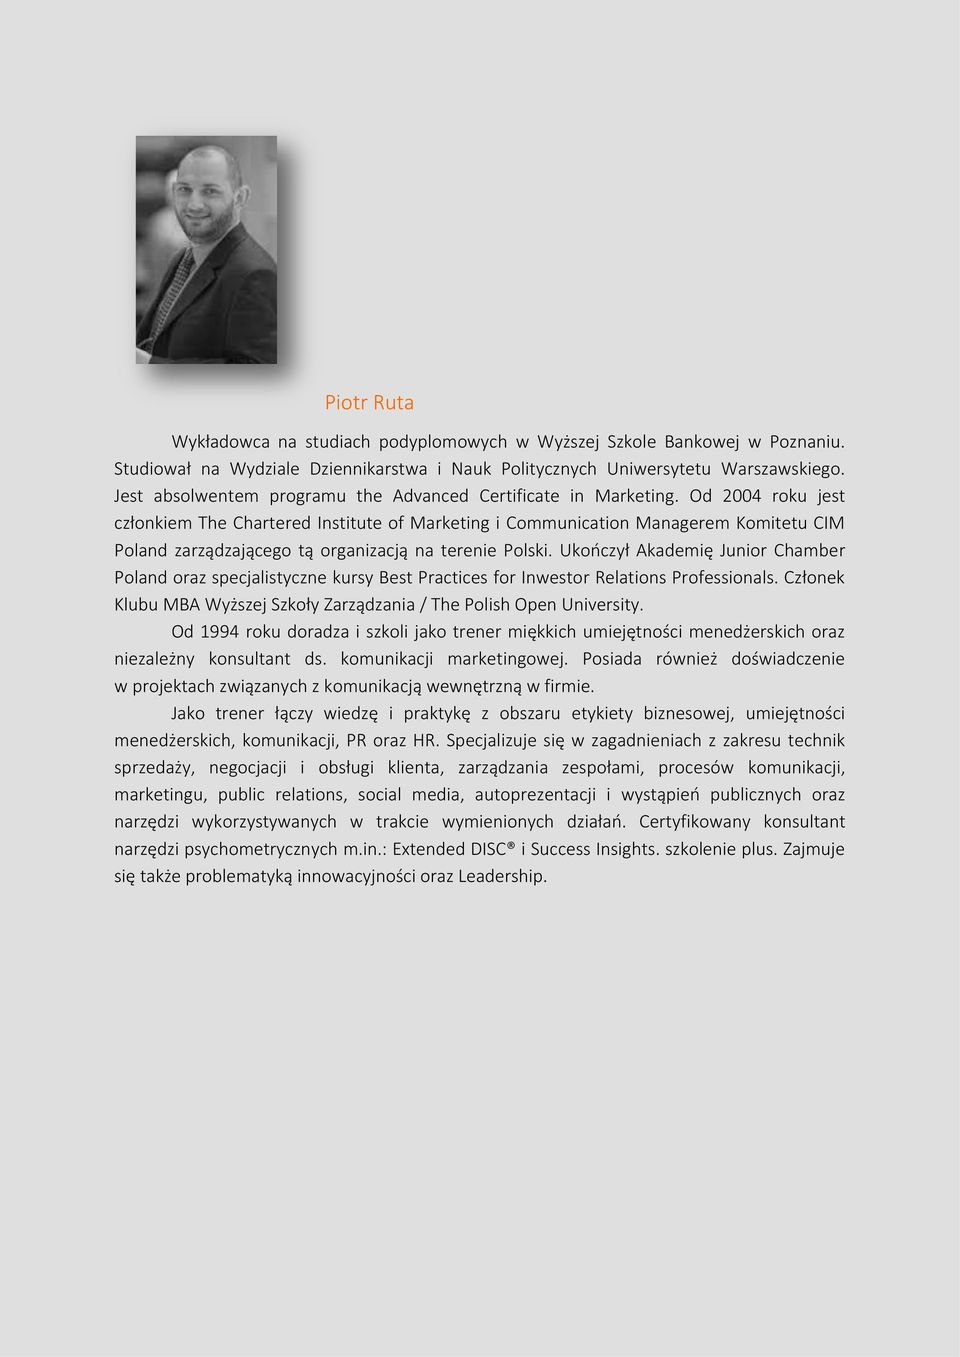 Od 2004 roku jest członkiem The Chartered Institute of Marketing i Communication Managerem Komitetu CIM Poland zarządzającego tą organizacją na terenie Polski.